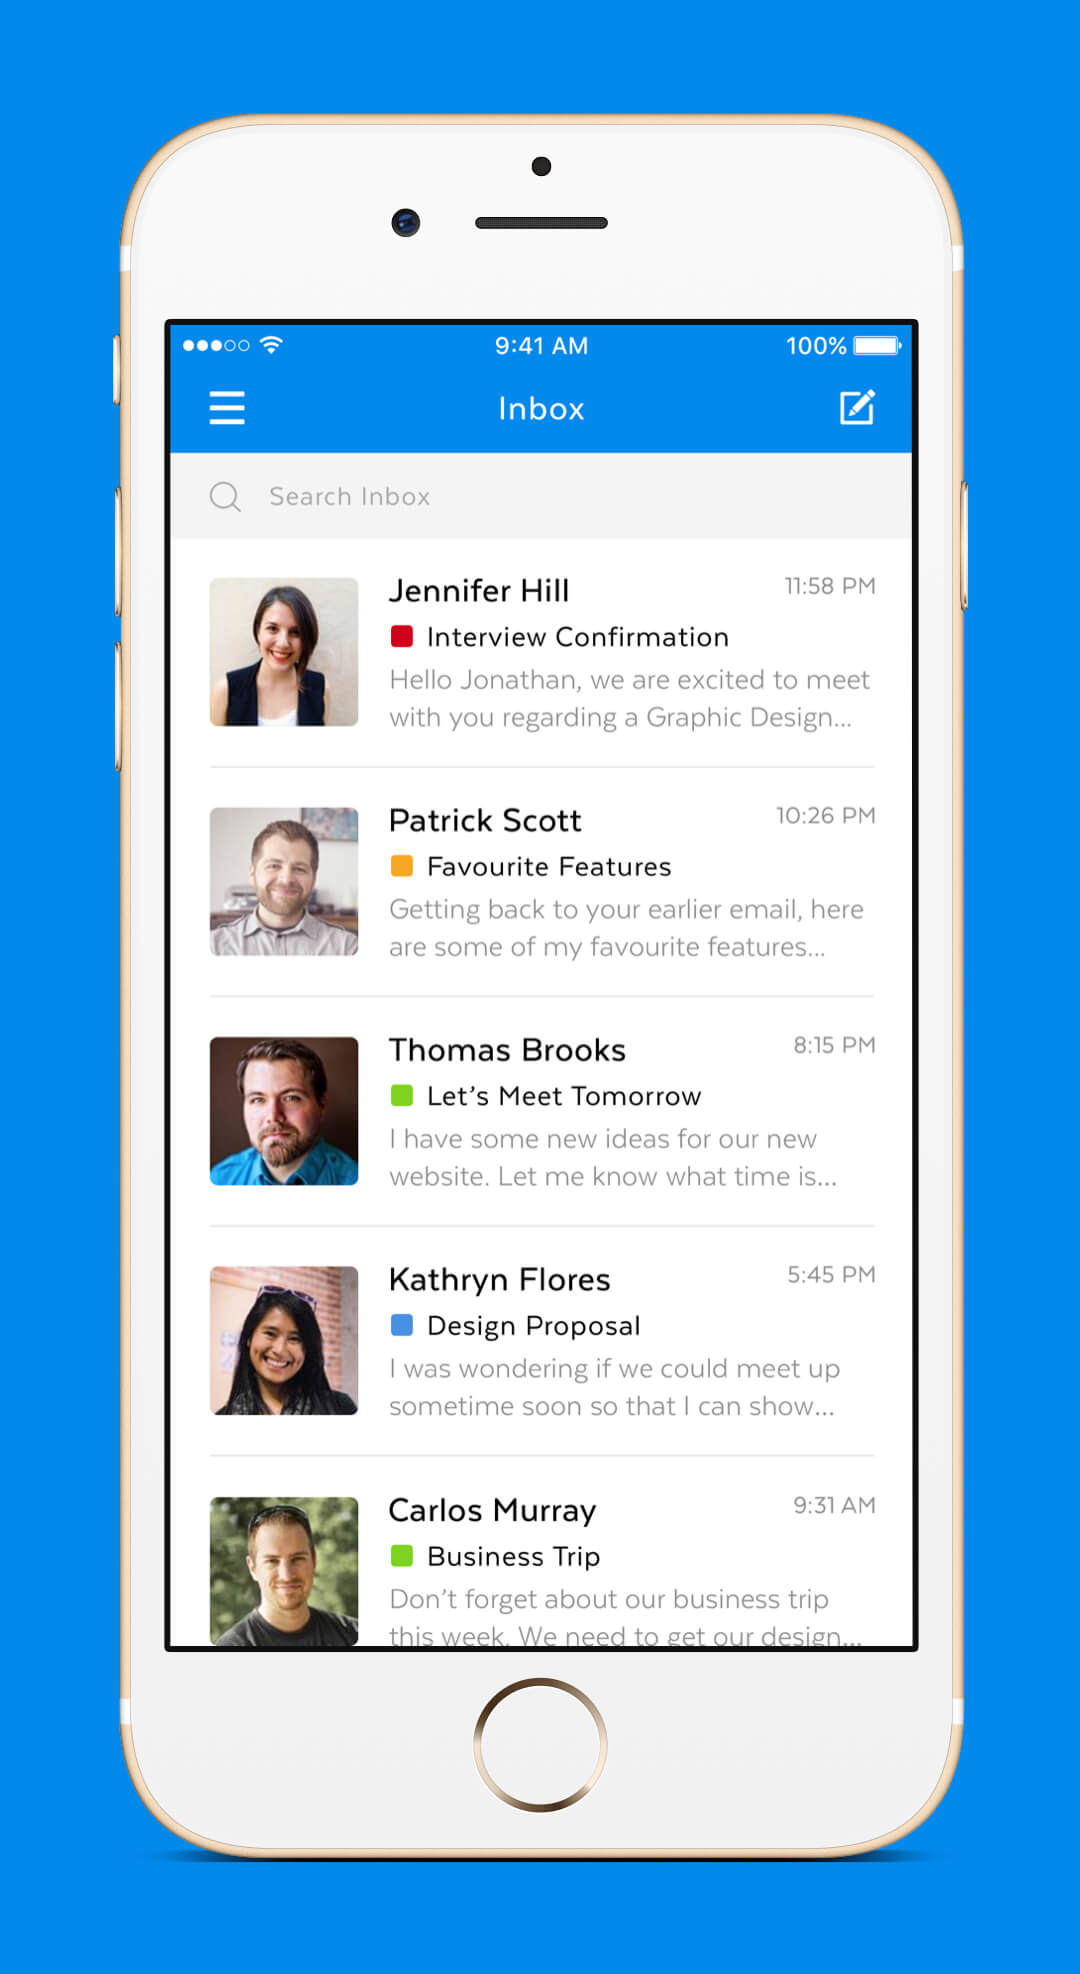 Mobile Mail App - Inbox Screen